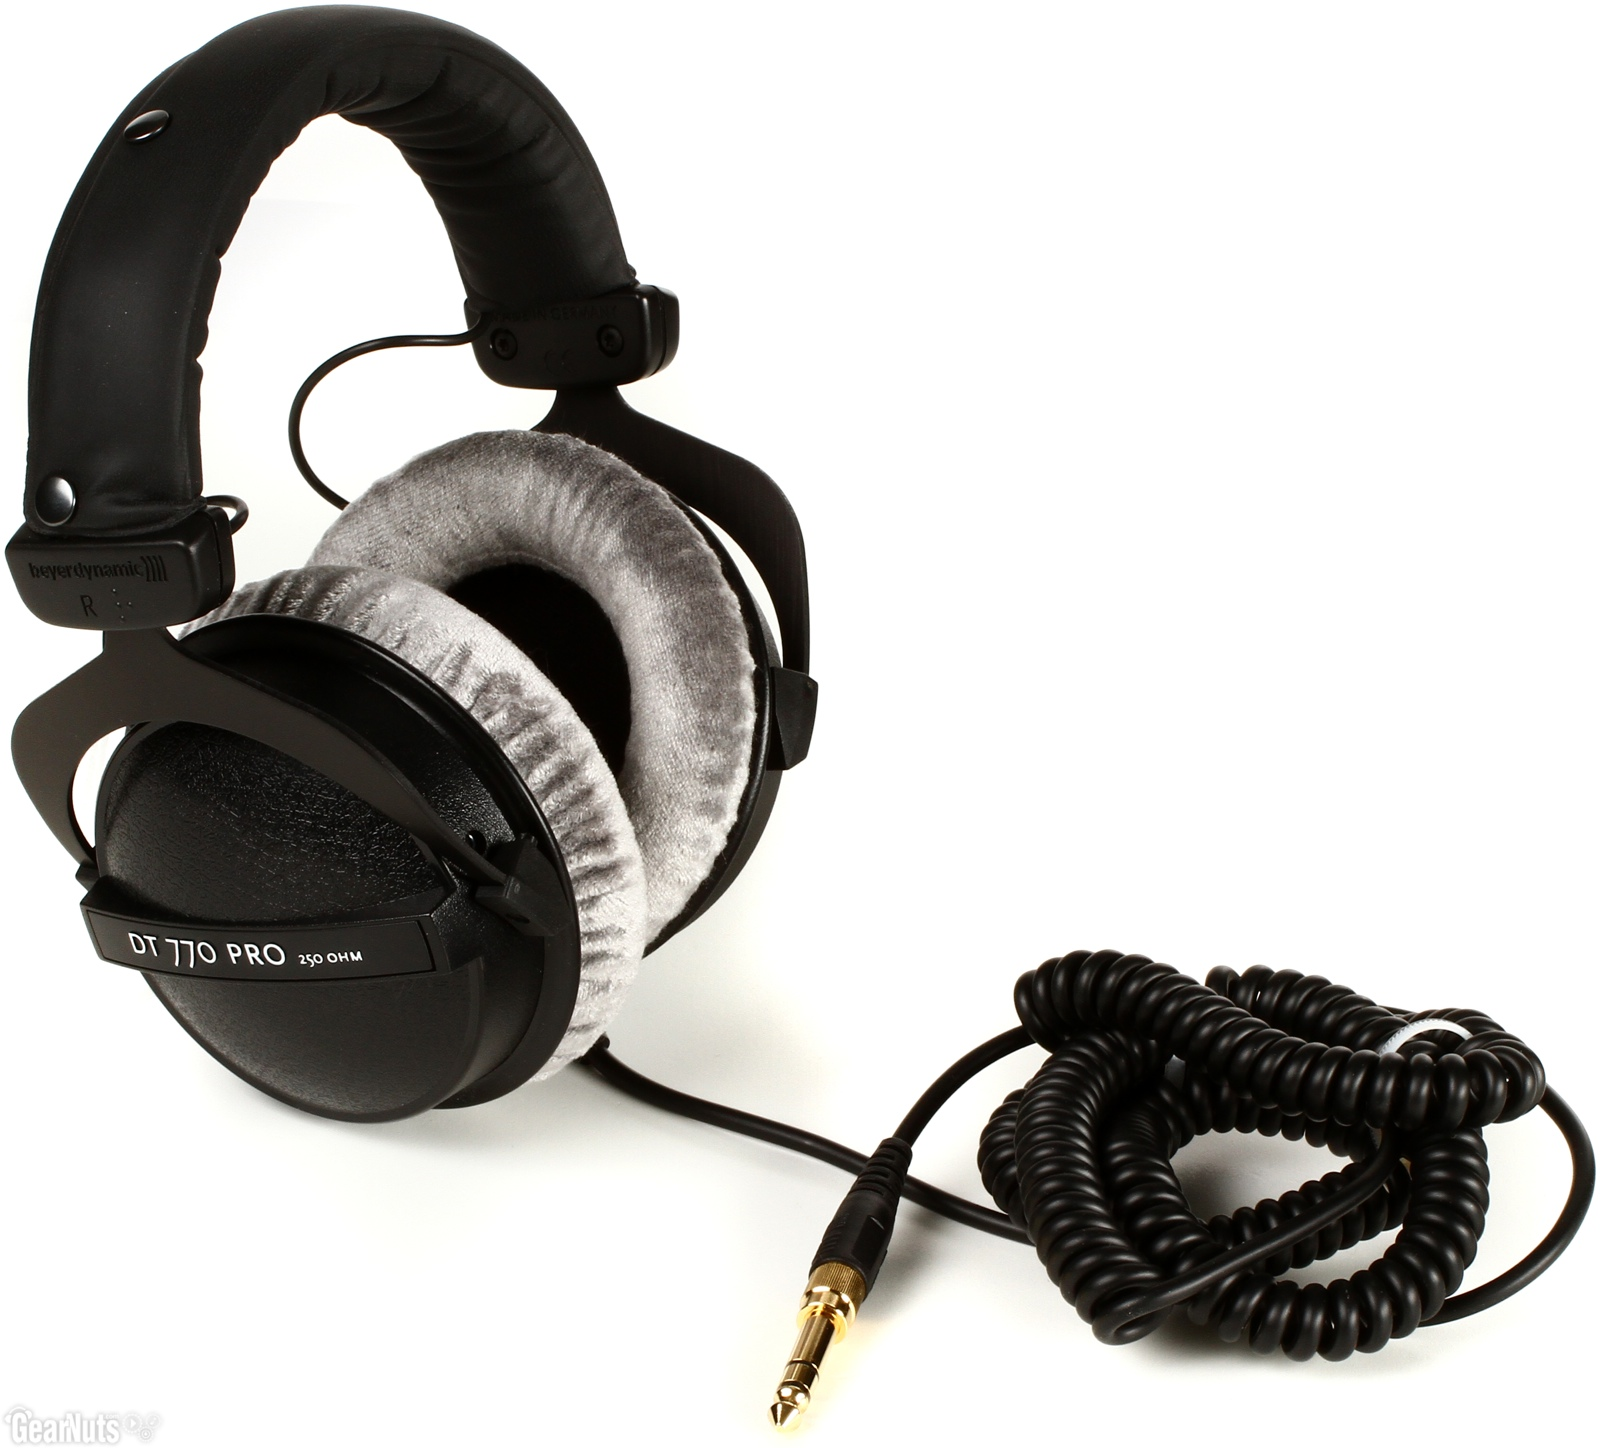 5be68e2542e DT 770 Studio 80 ohms? Are these guitar centers version? | Headphone ...